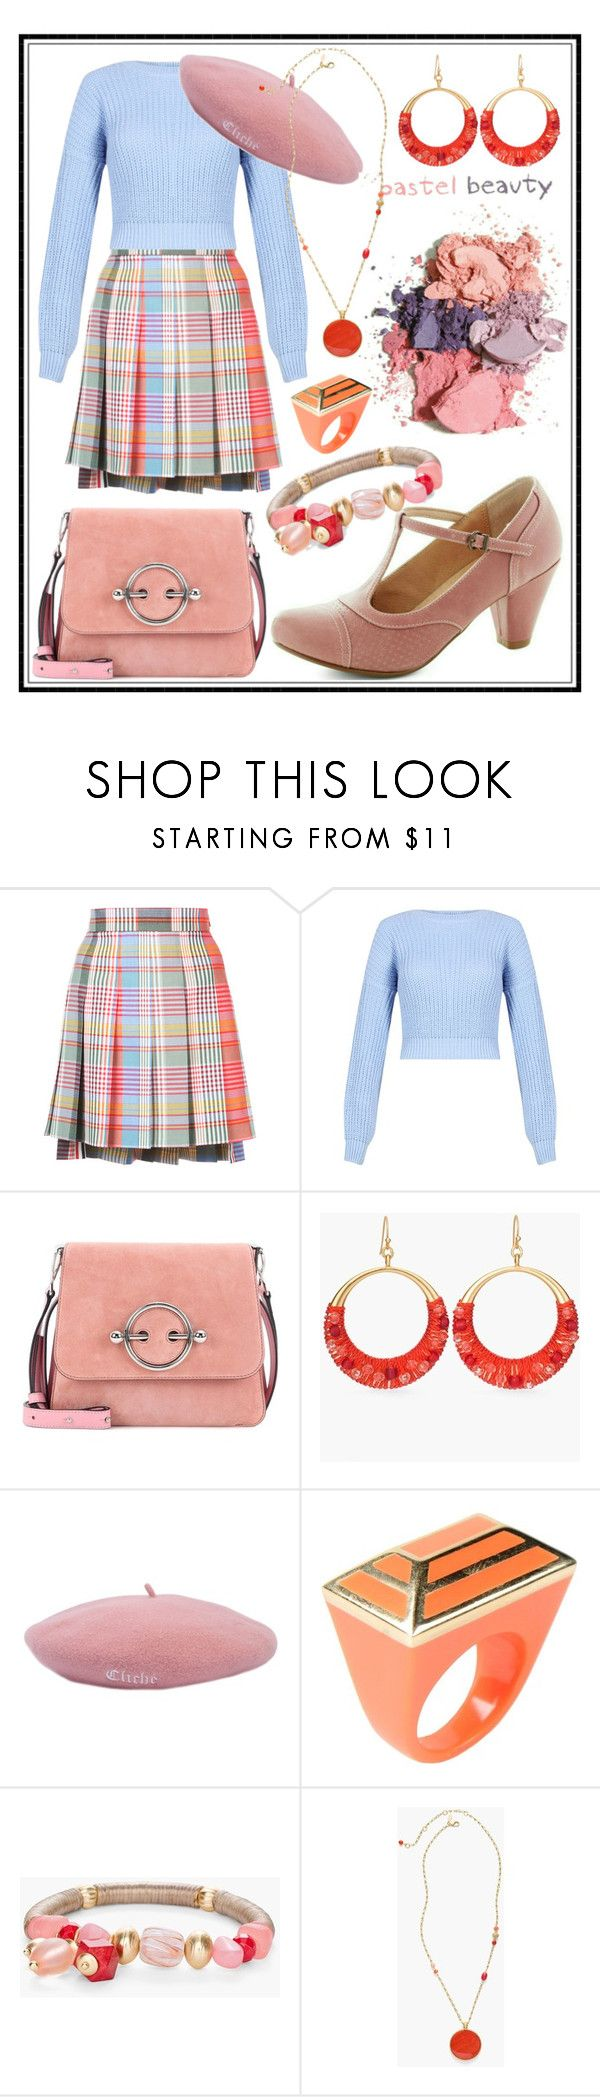 """""""STYLE 1"""" by seus-eky ❤ liked on Polyvore featuring Thom Browne, J.W. Anderson, Chico's and Isharya"""